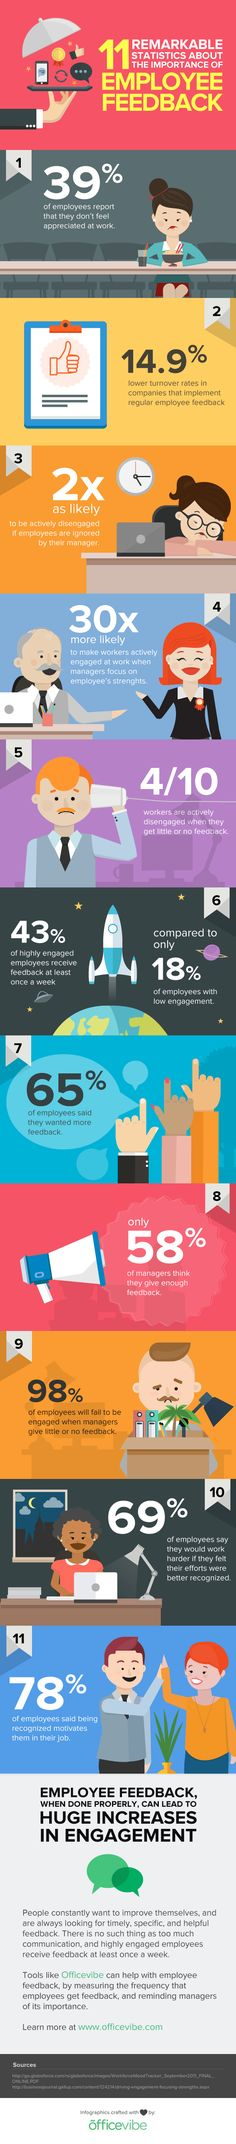 Here's an infographic displaying some of the statistics behind employee feedback. Try using some form of employee recognition or employee feedback.